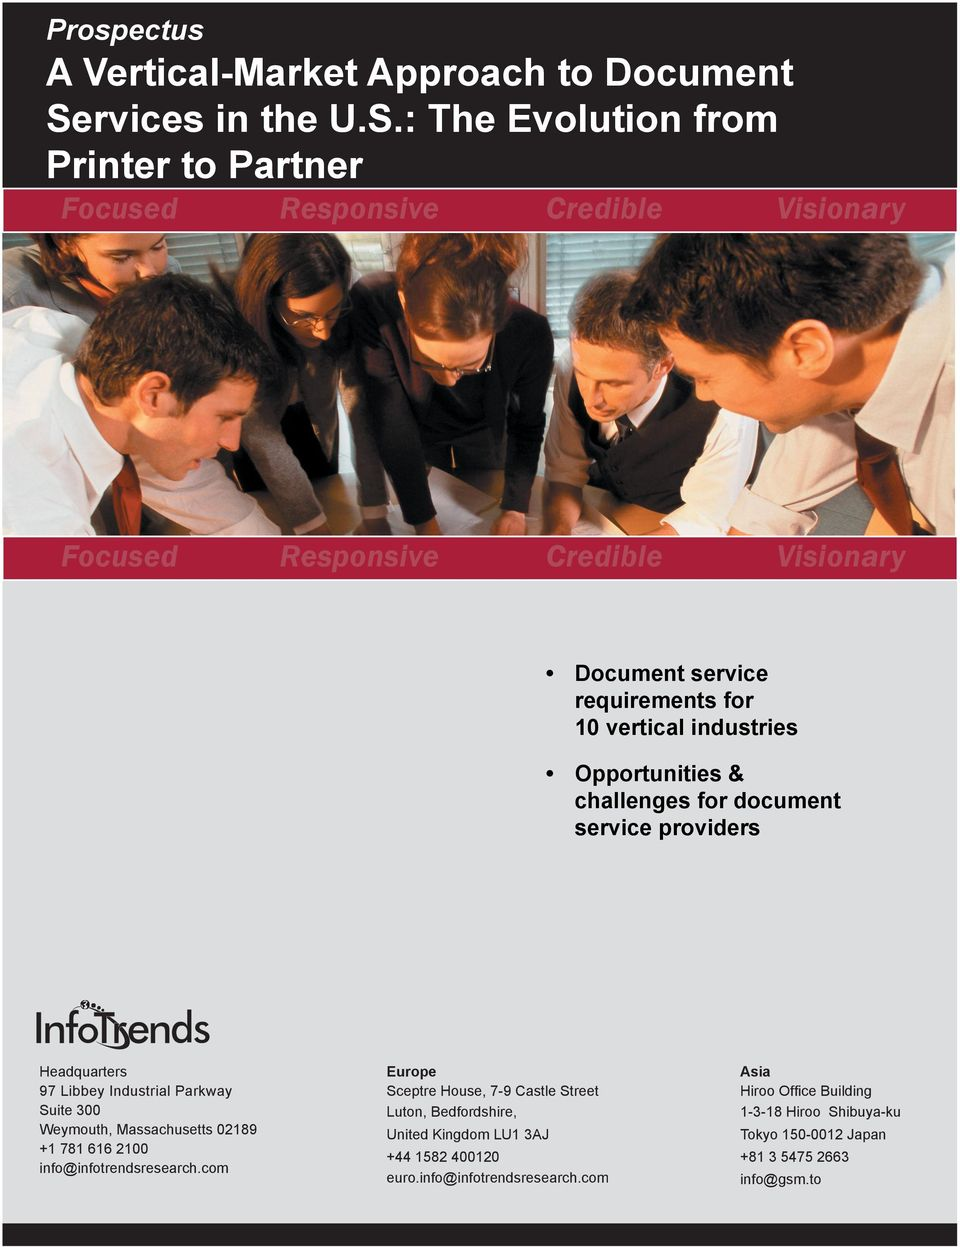 : The Evolution from Printer to Partner Focused Focused Document service requirements for 10 vertical industries Opportunities & challenges for